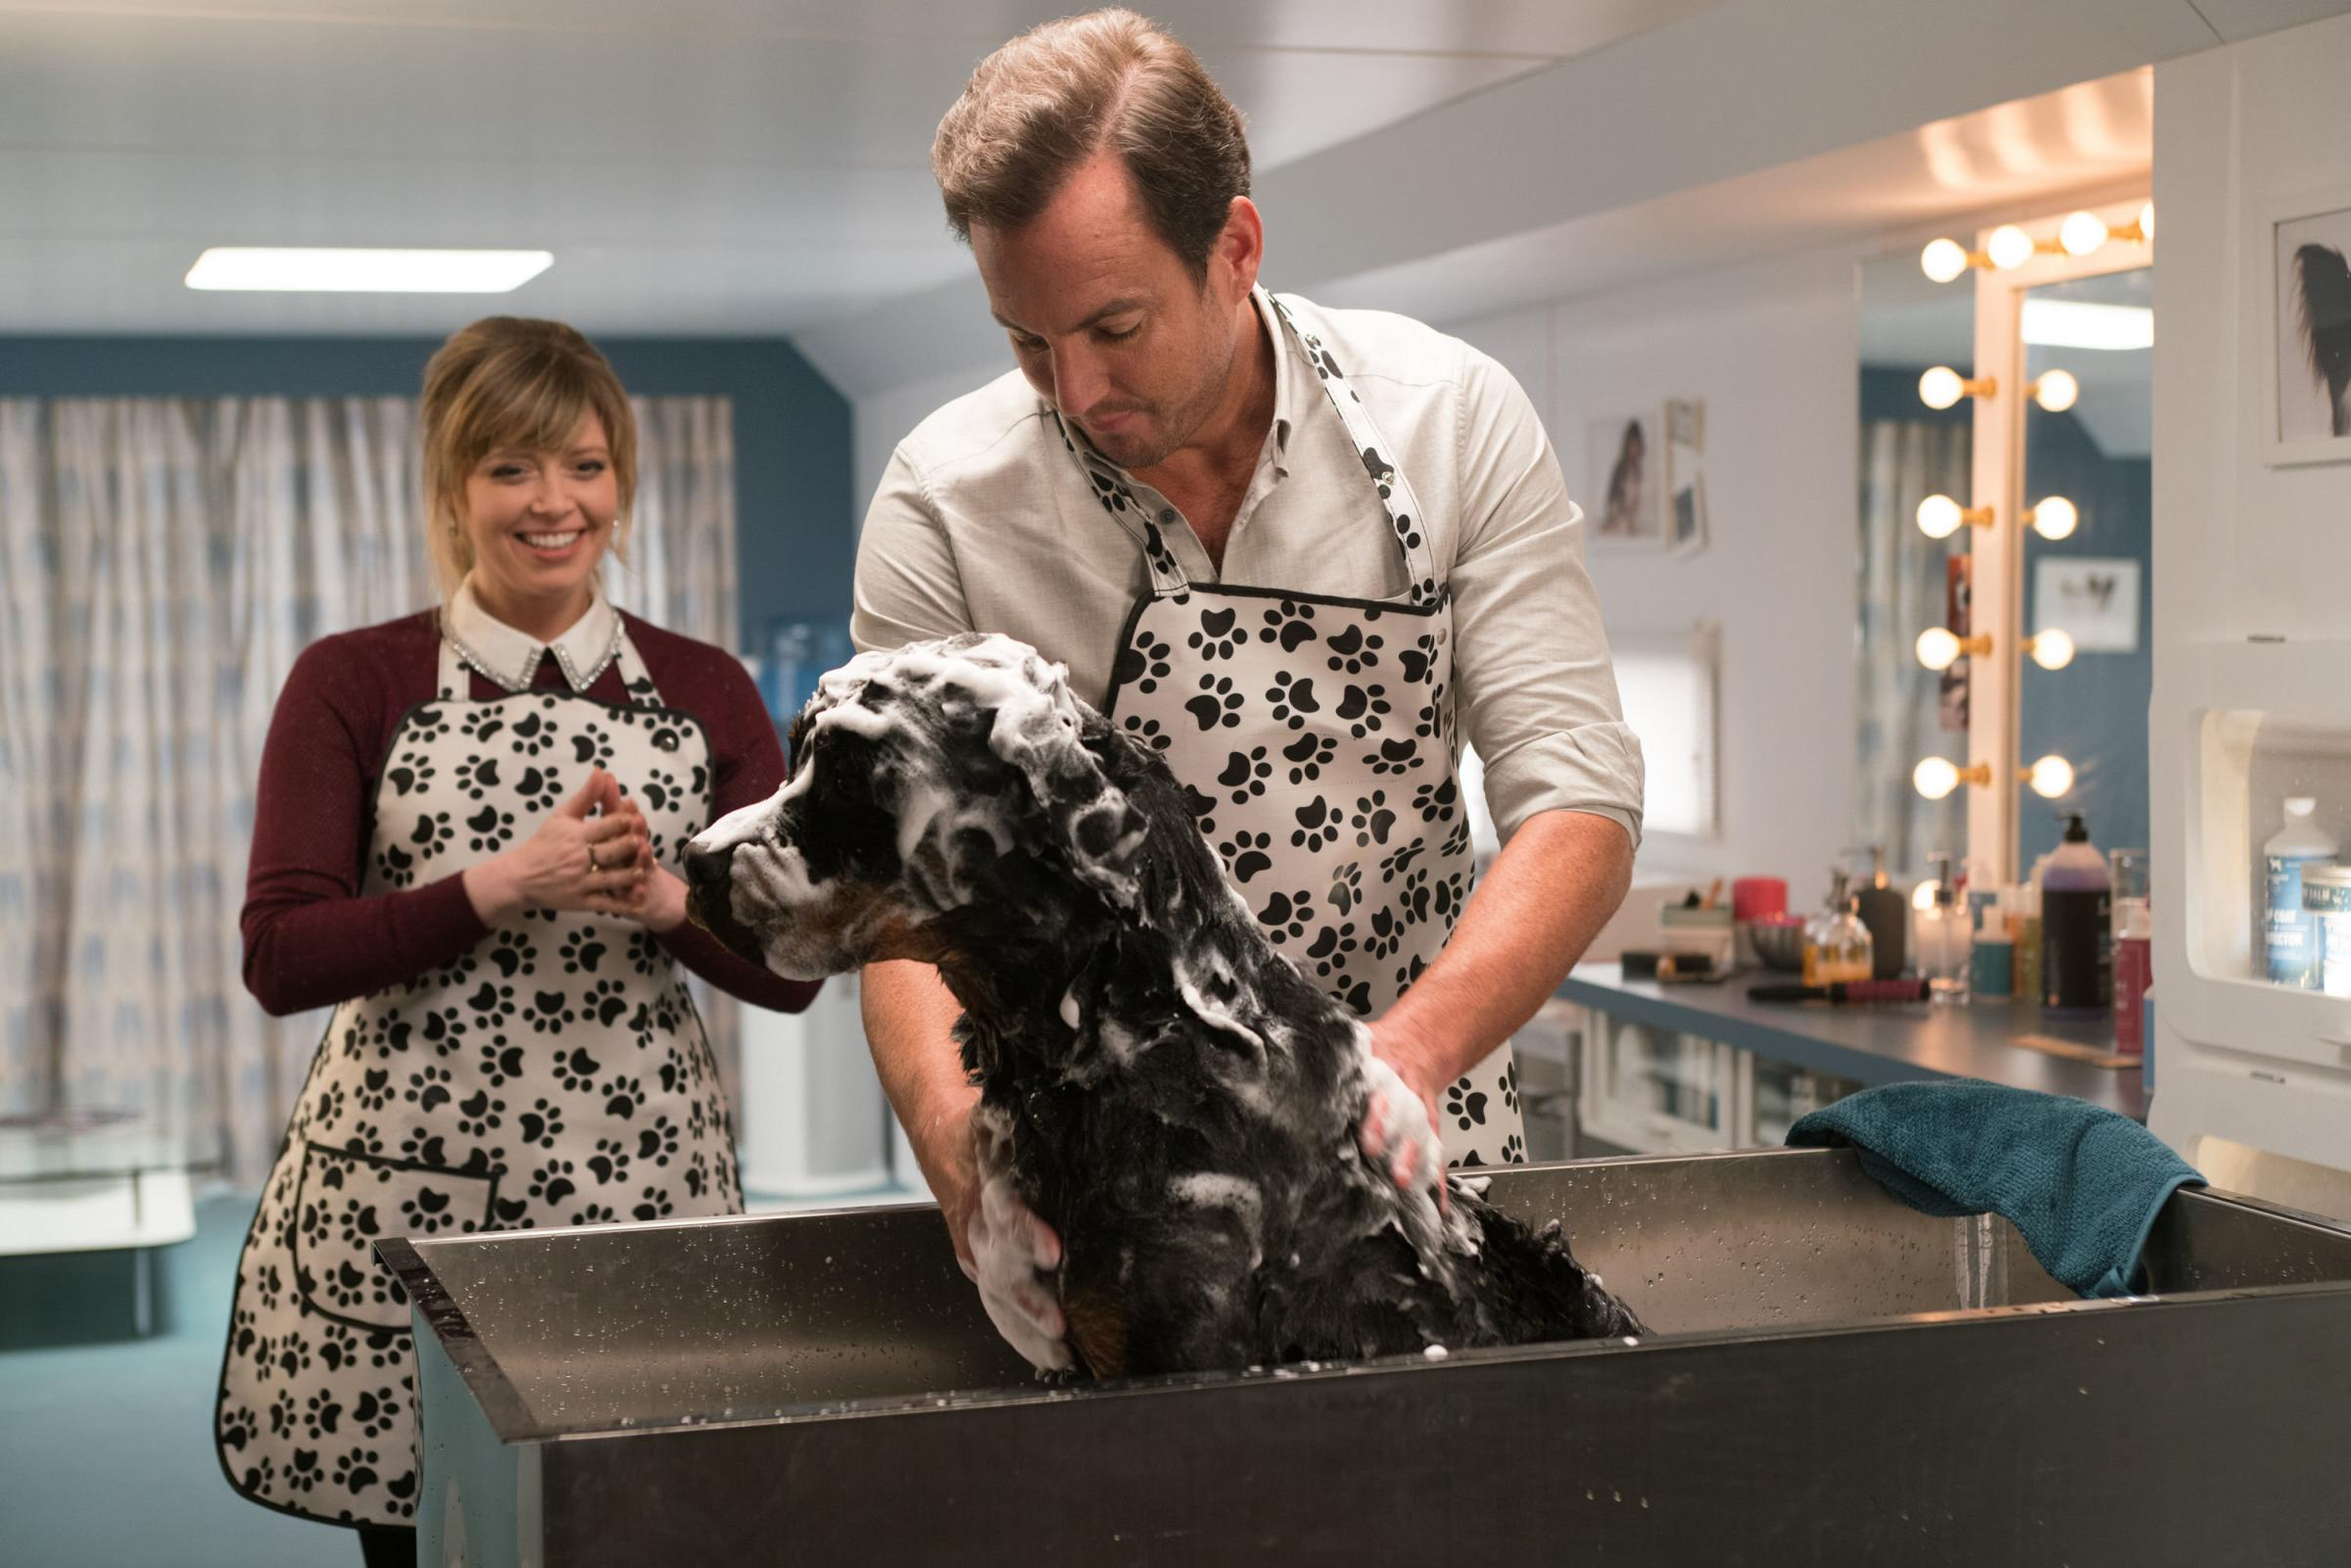 Will Arnett and chum prepare to strut their stuff in Show Dogs